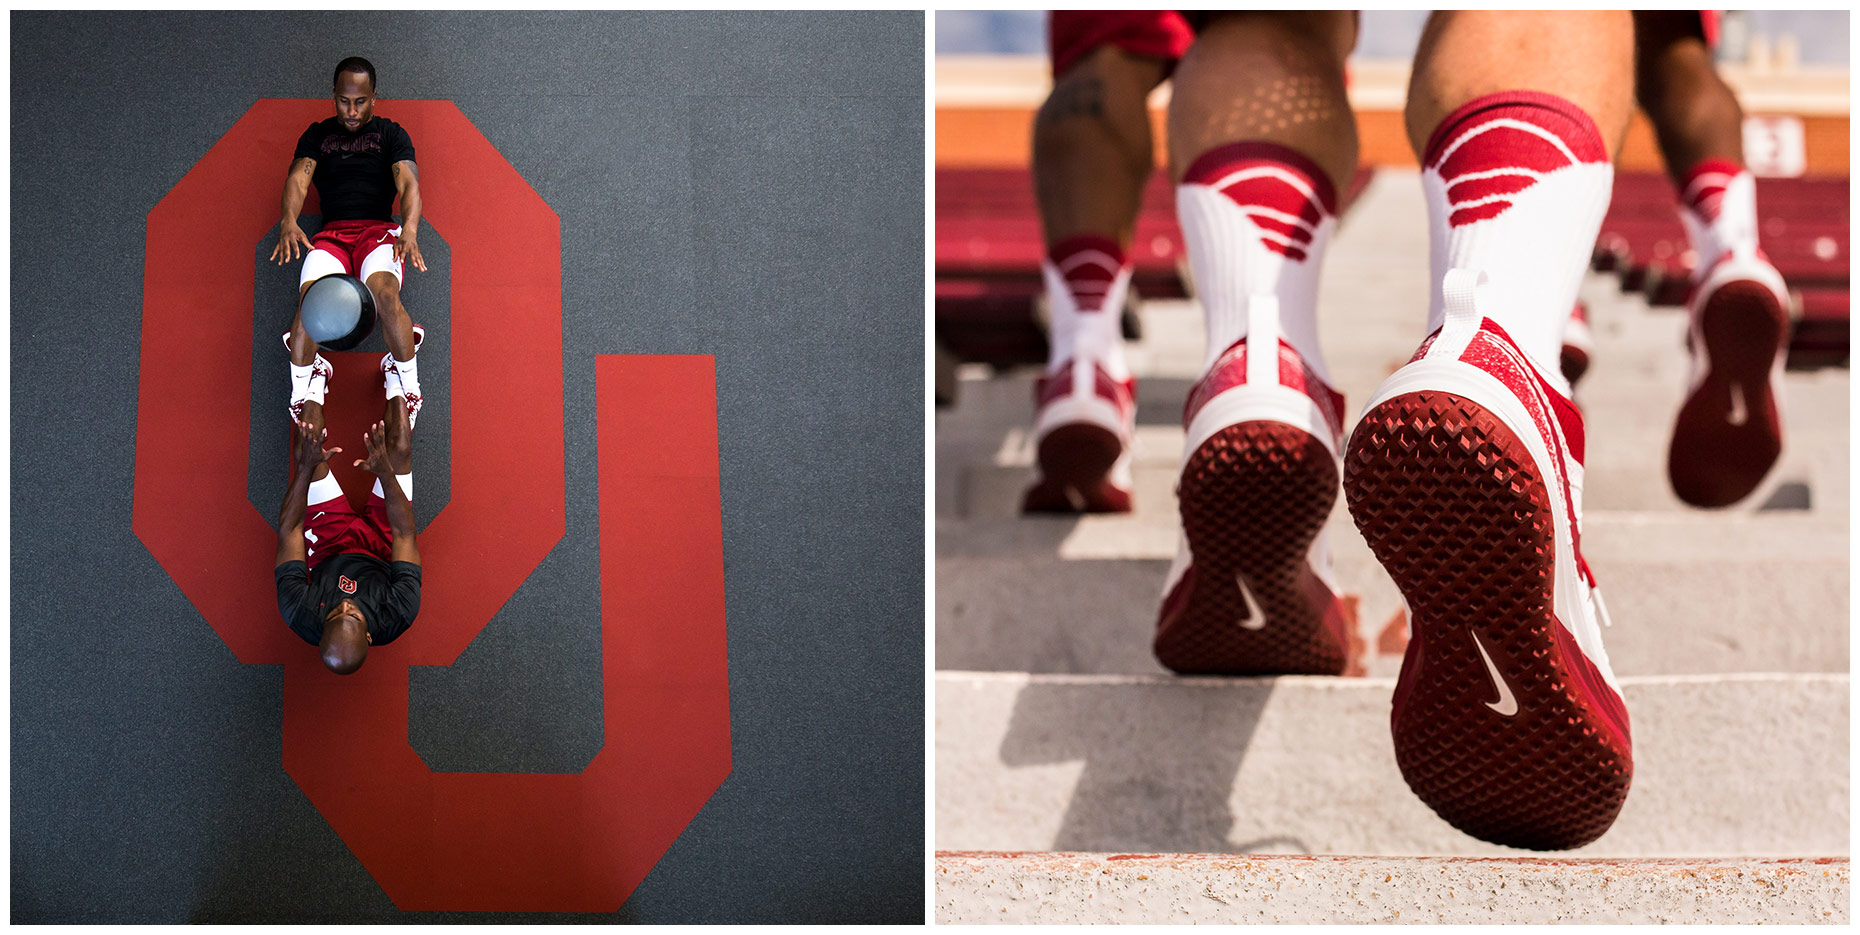 Oklahoma Sooners | Project for Nike Digital